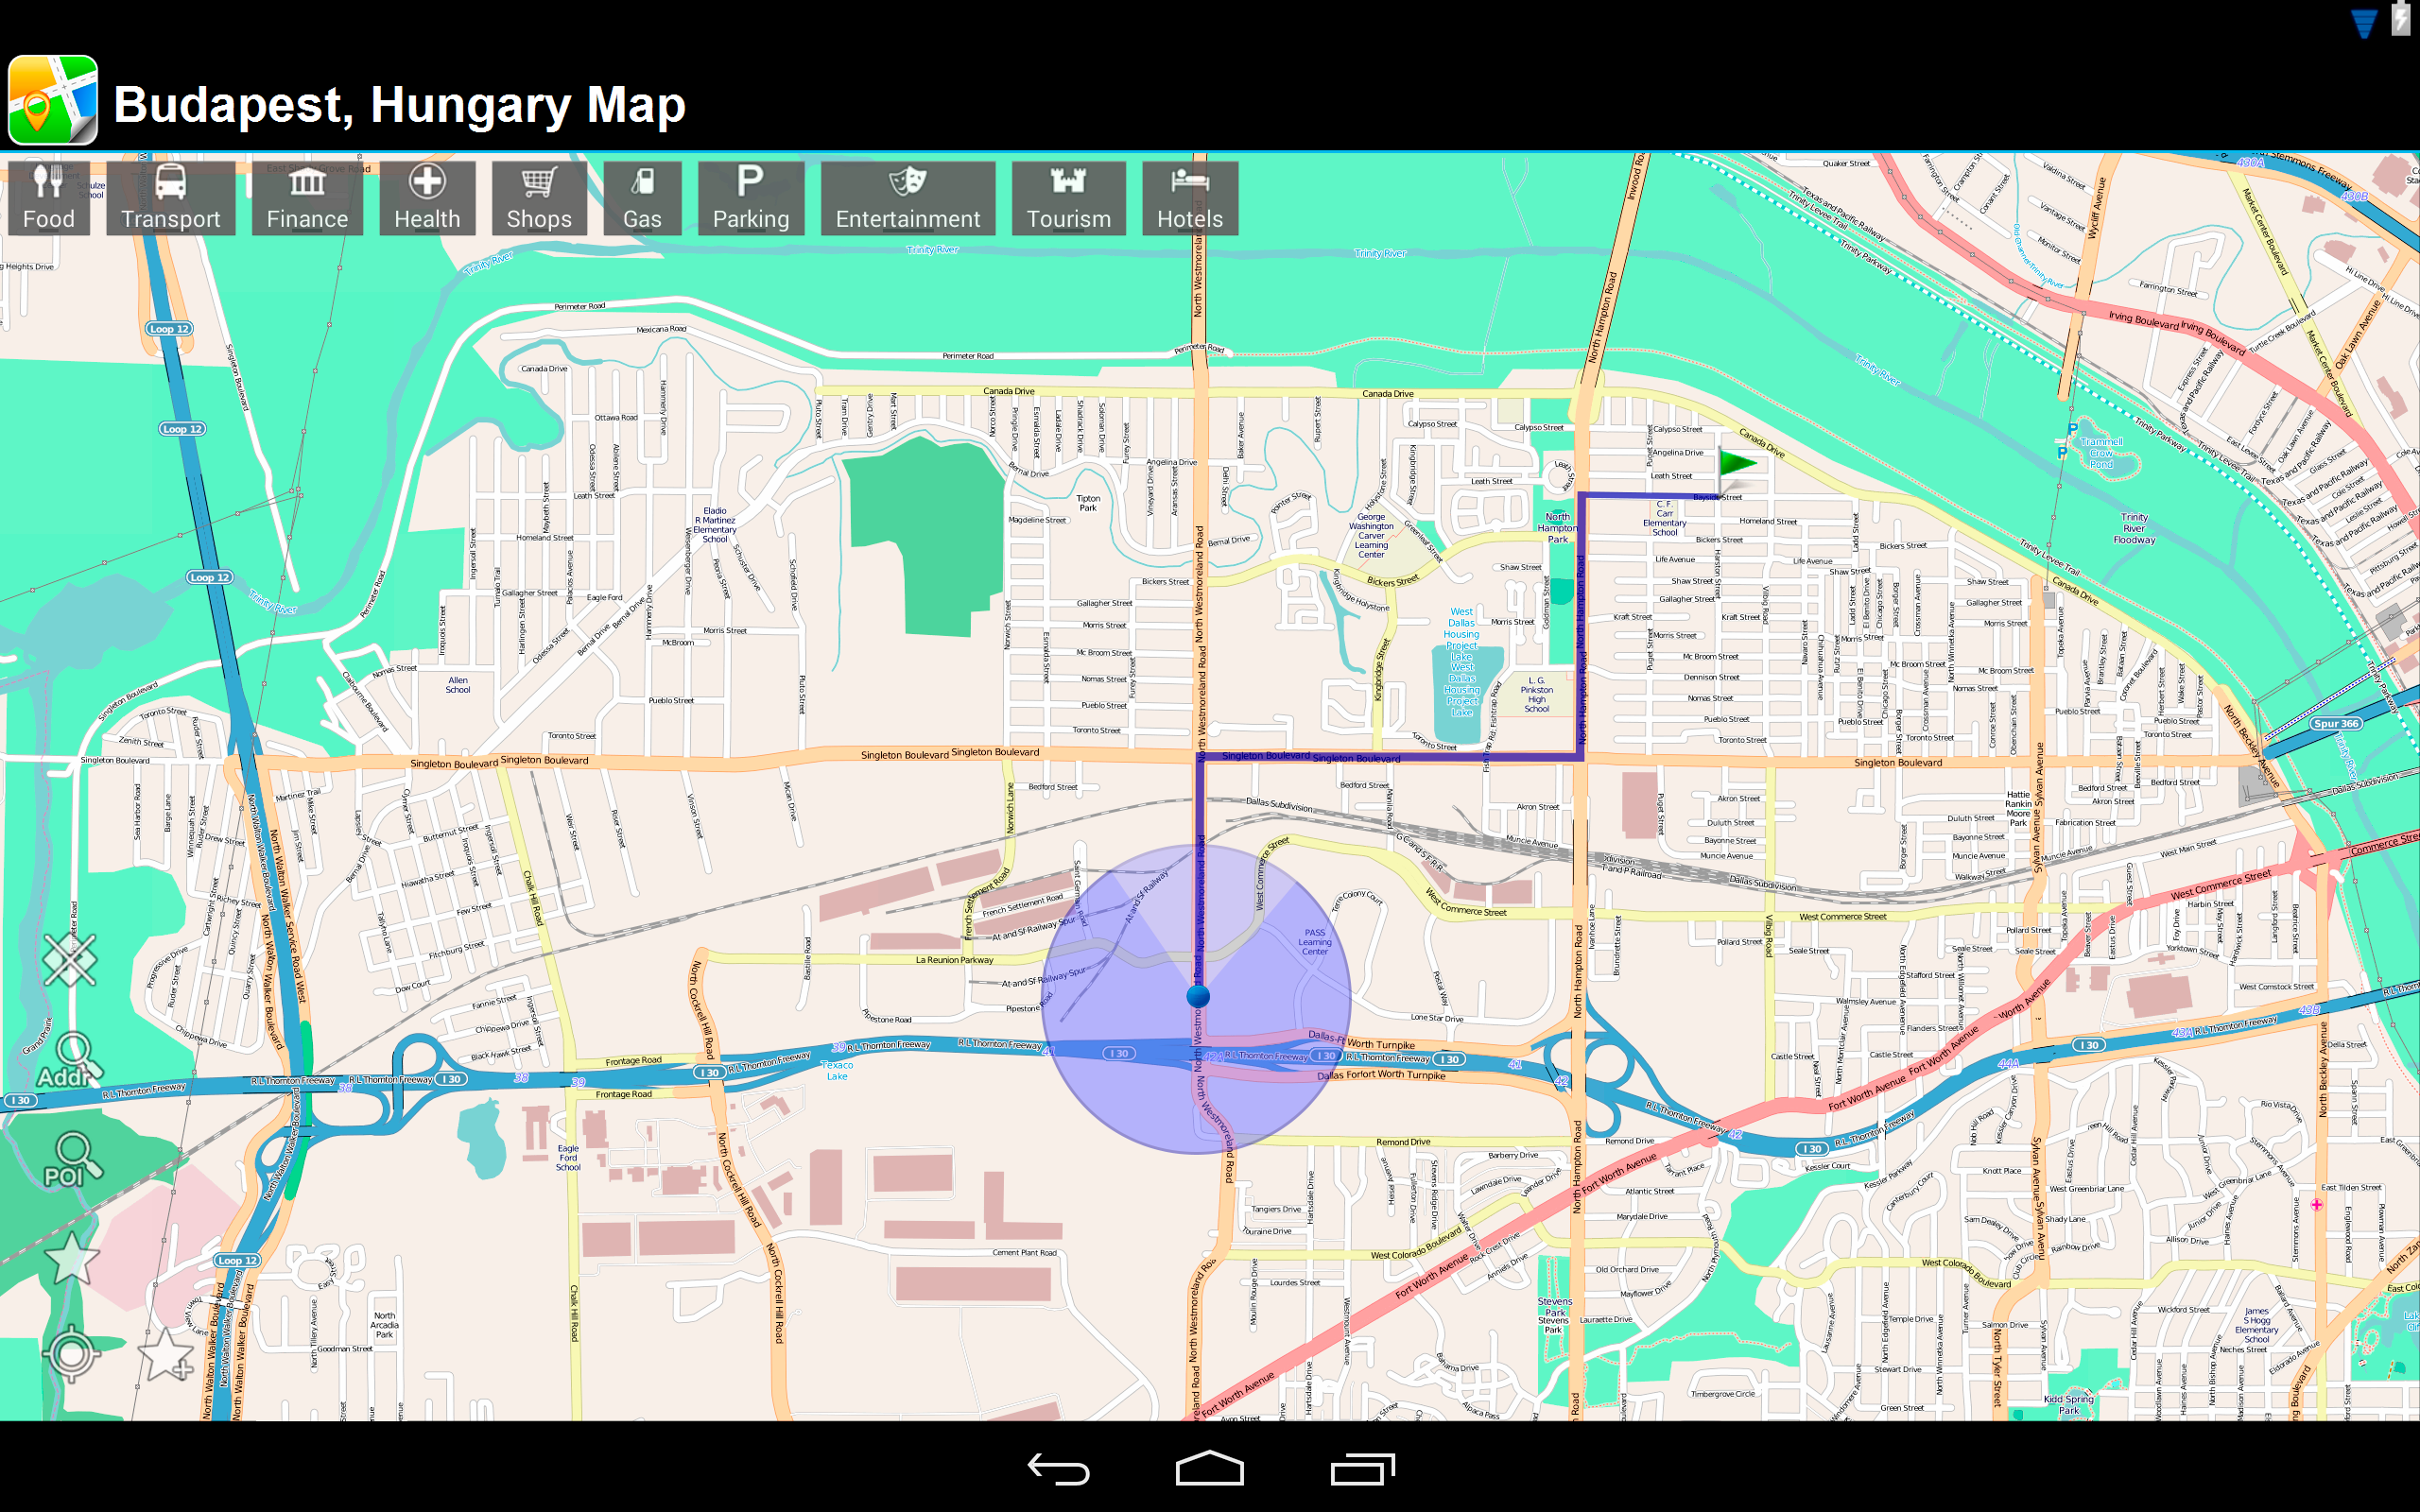 Amazon.com: Budapest, Hungary Offline Map: PLACE STARS: Appstore for ...